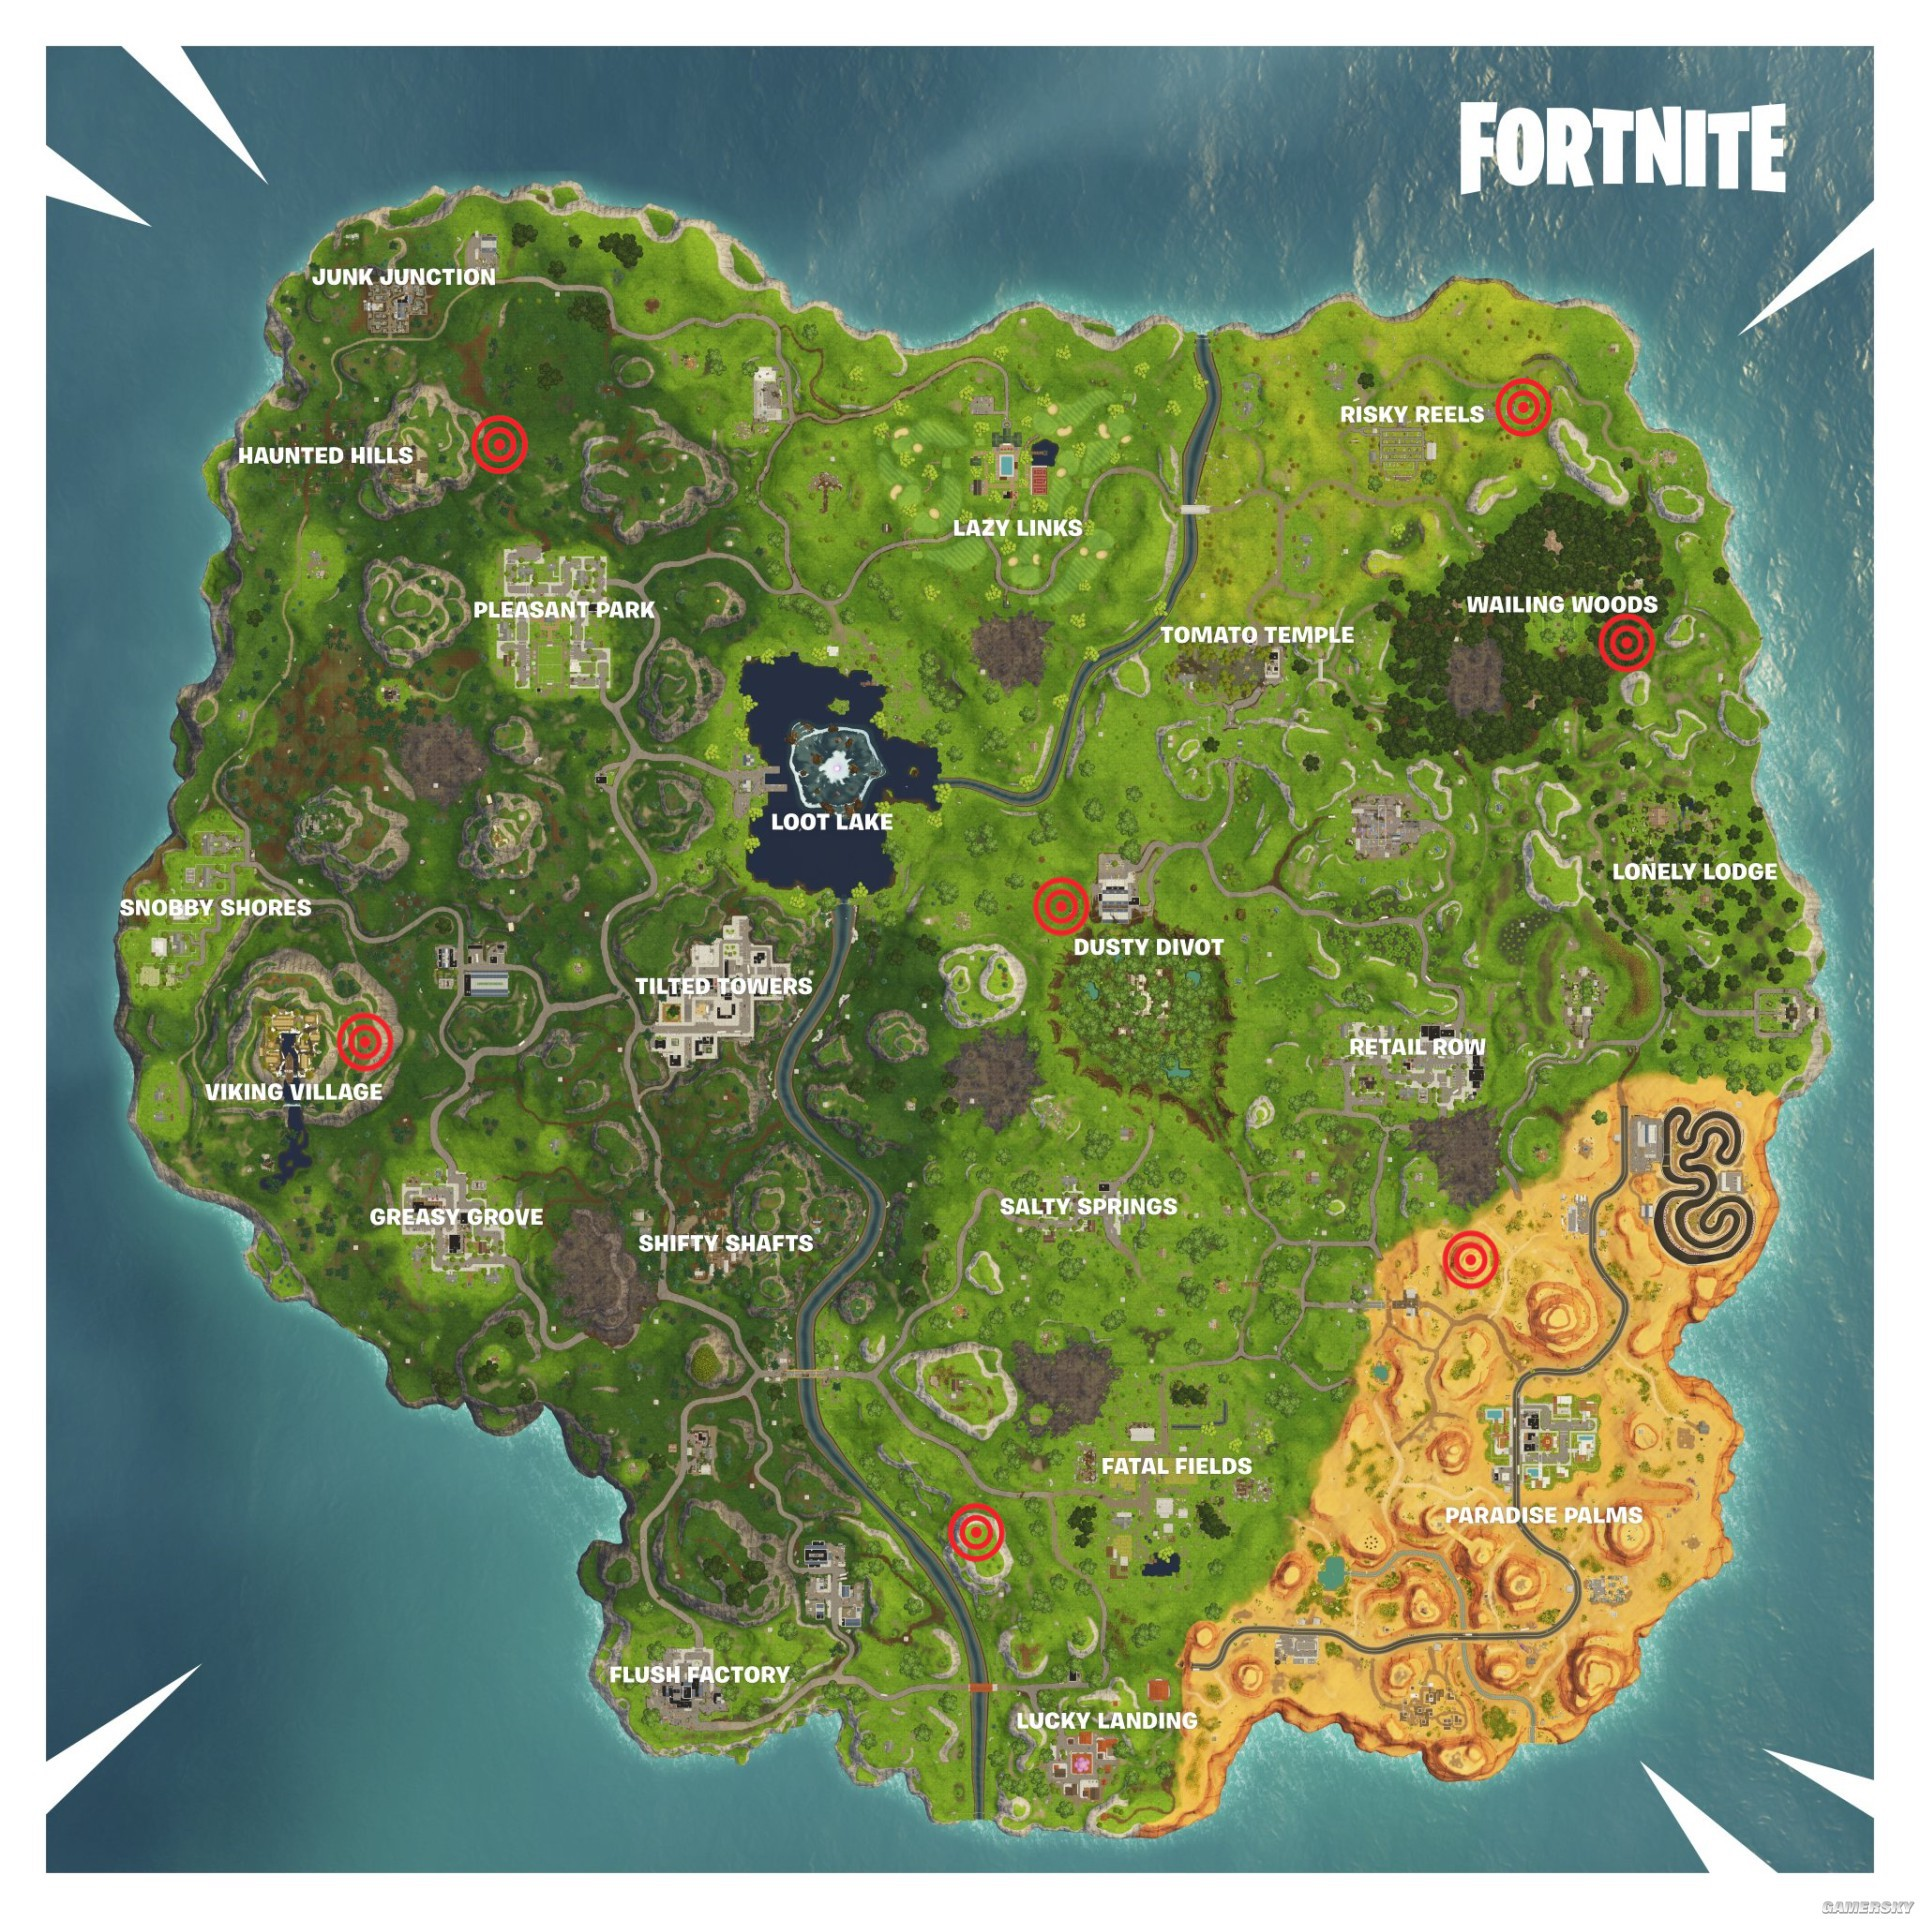 Fortnite Shooting Gallery Locations Where To Find Them On The Map